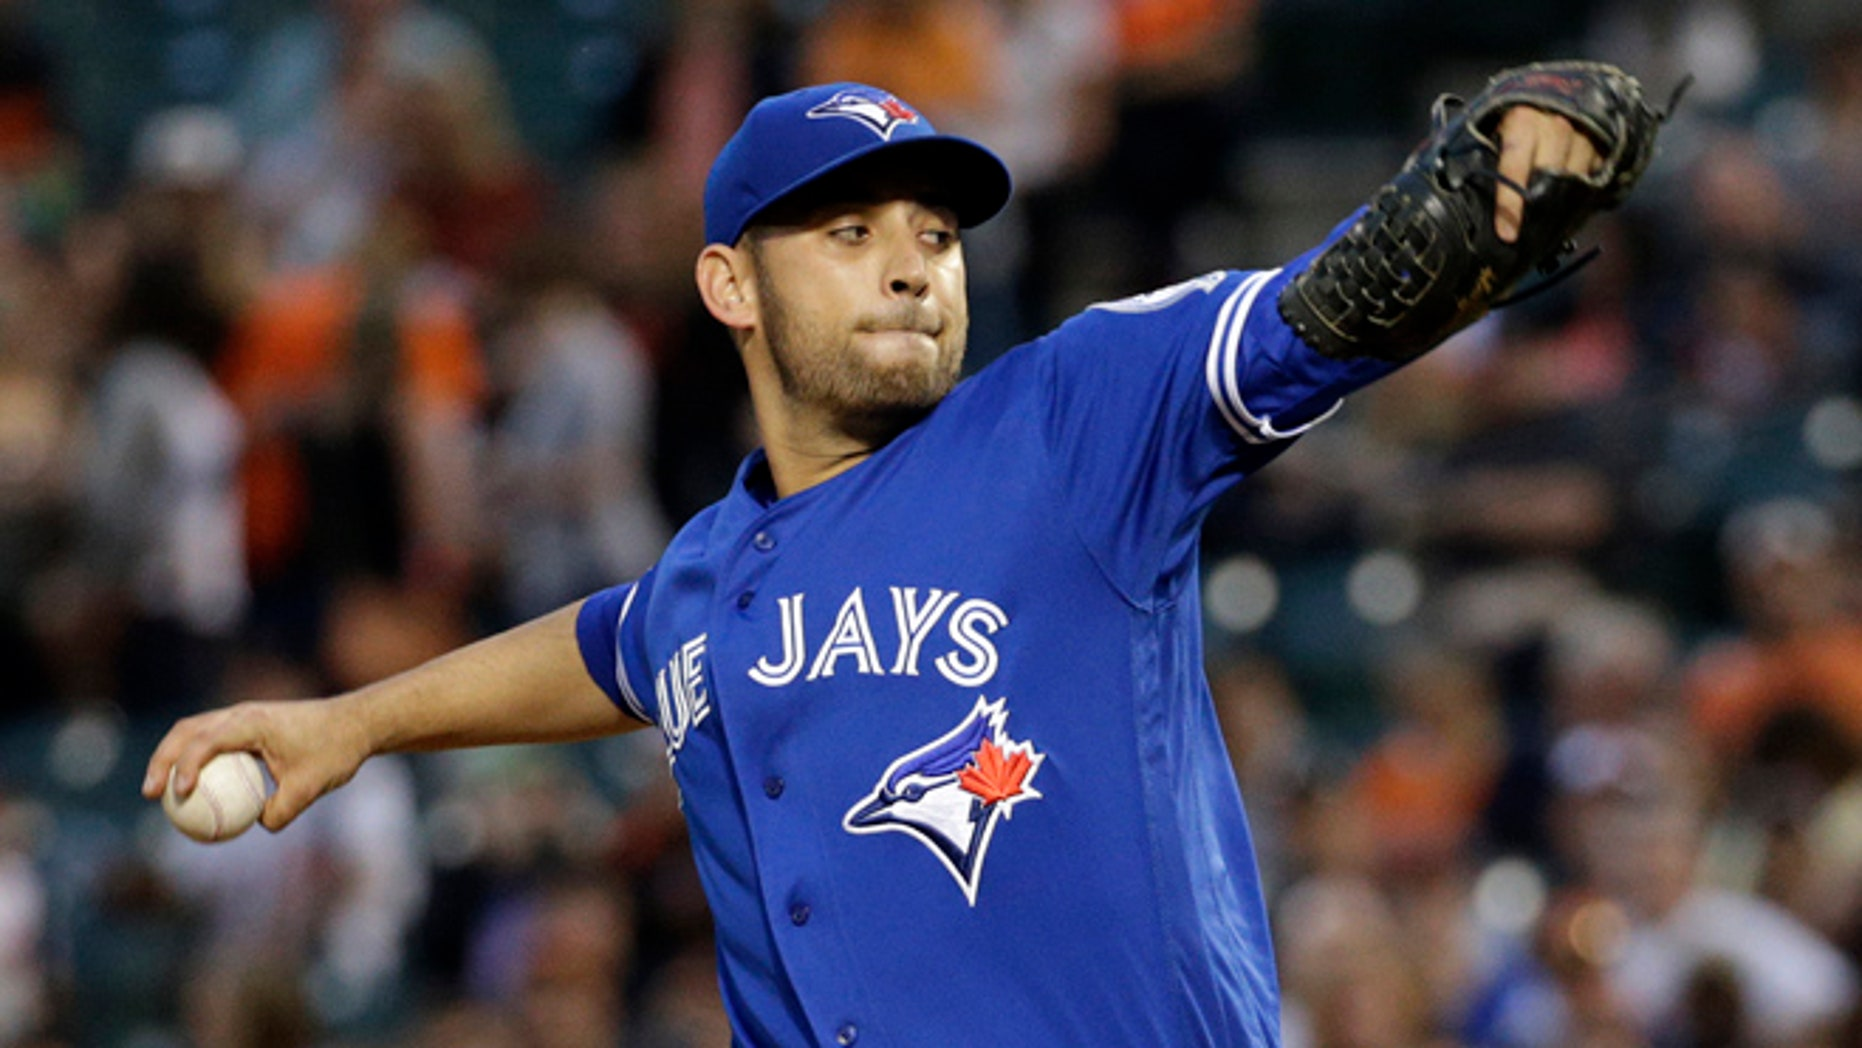 "FILE- In this April 21, 2016, file photo, Toronto Blue Jays starting pitcher Marco Estrada throws to the Baltimore Orioles during the first inning of a baseball game in Baltimore. Estrada has gone on the disabled list because of a sore lower back and will not play in the All-Star Game. ""My worst nightmare came true, unfortunately,"" Estrada said Wednesday, July 6. ""In the long run, this is the right thing to do."" (AP Photo/Patrick Semansky, File)"